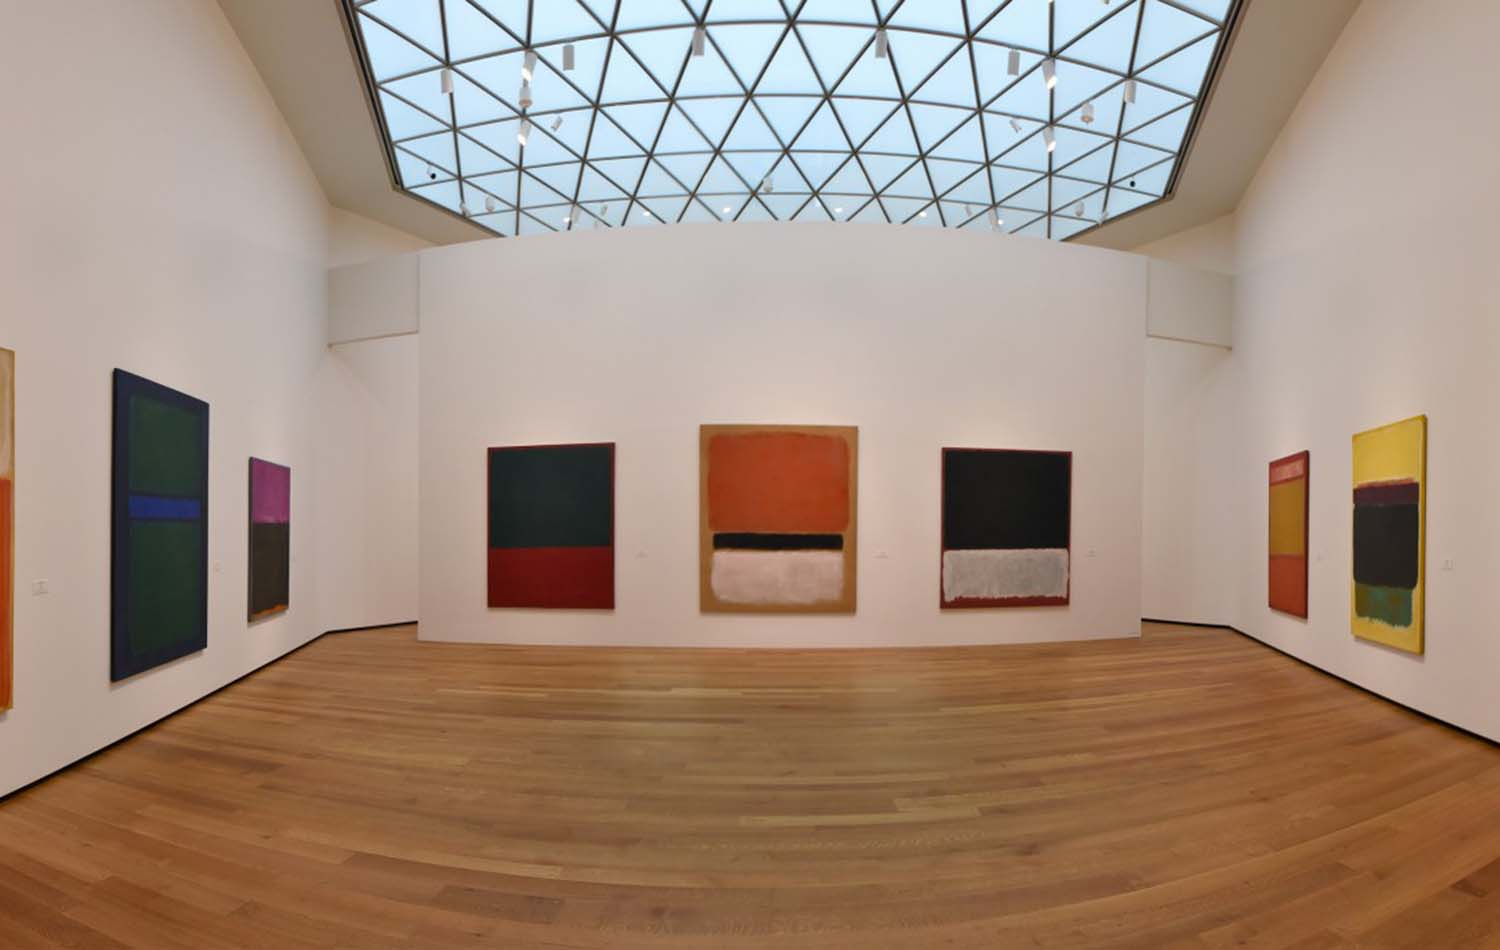 A collection of Mark Rothko works is located atop tower one. (Bill O'Leary/The Washington Post)